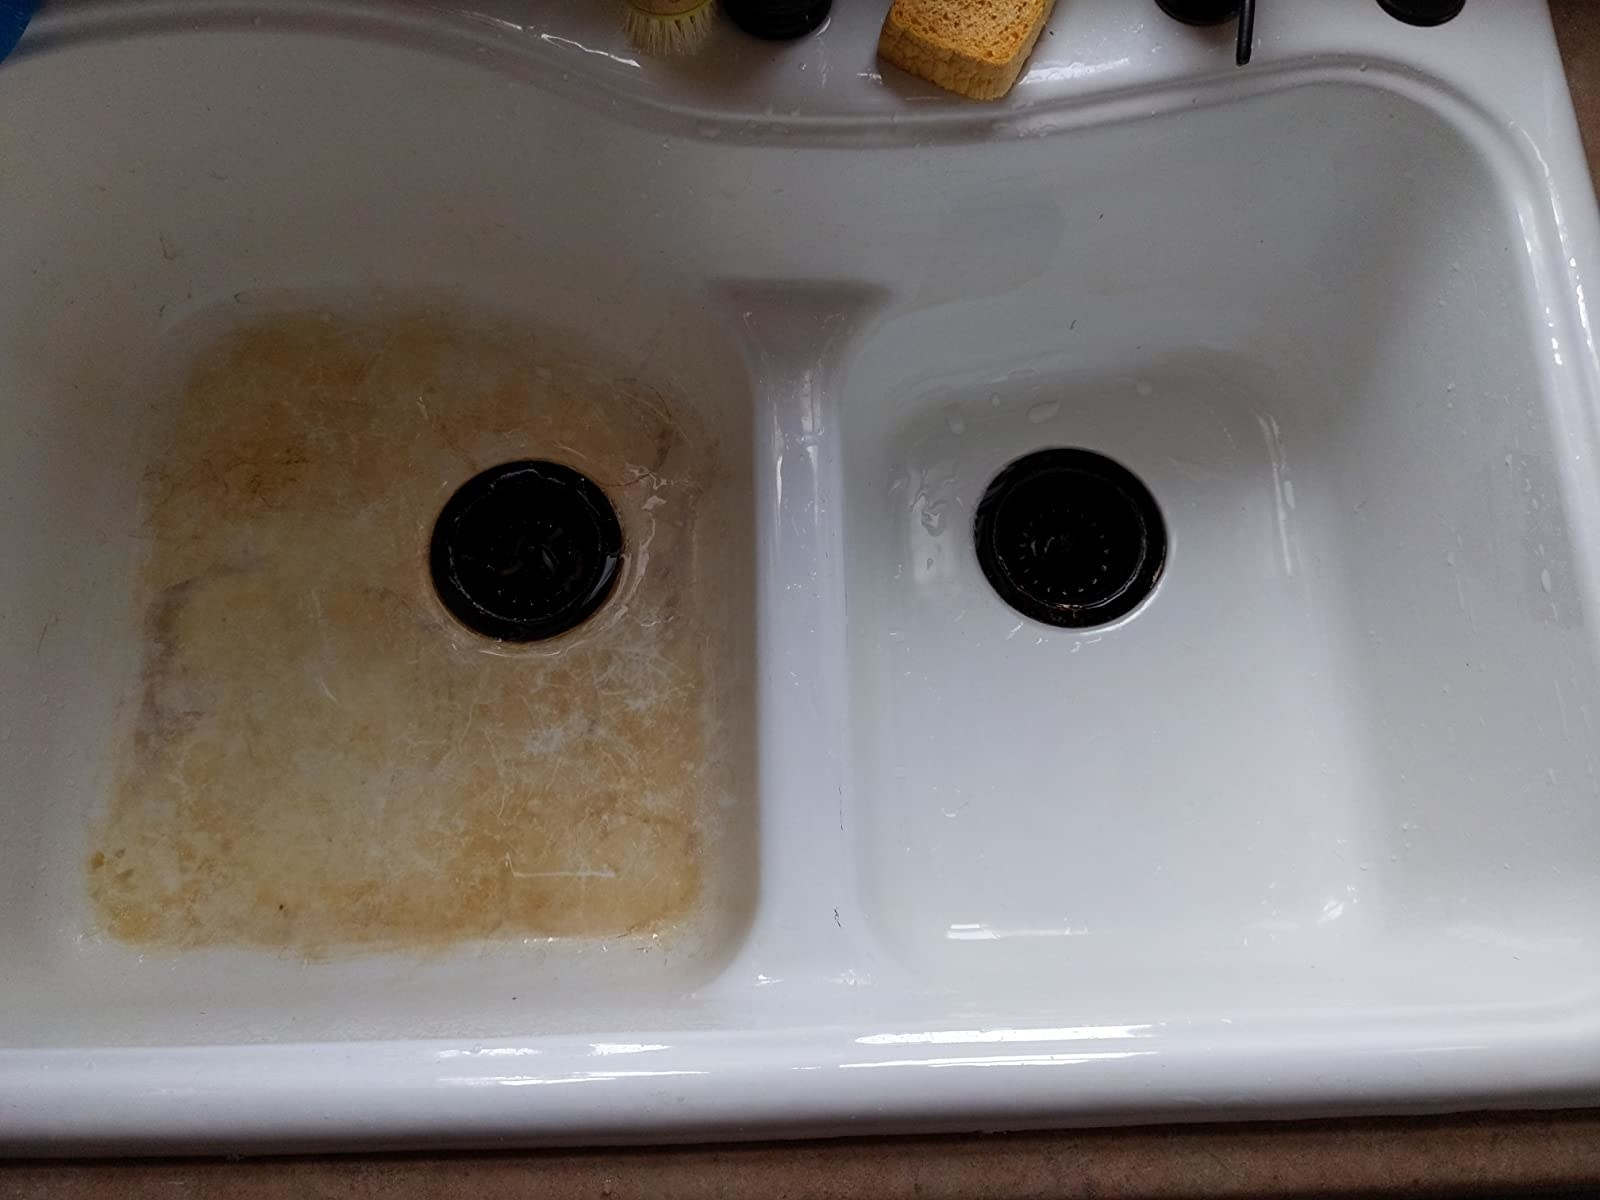 reviewer photo showing half of their sink has been cleaned with the sink cleaner, revealing the perfectly white, shiny surface beneath all the gunk and grime